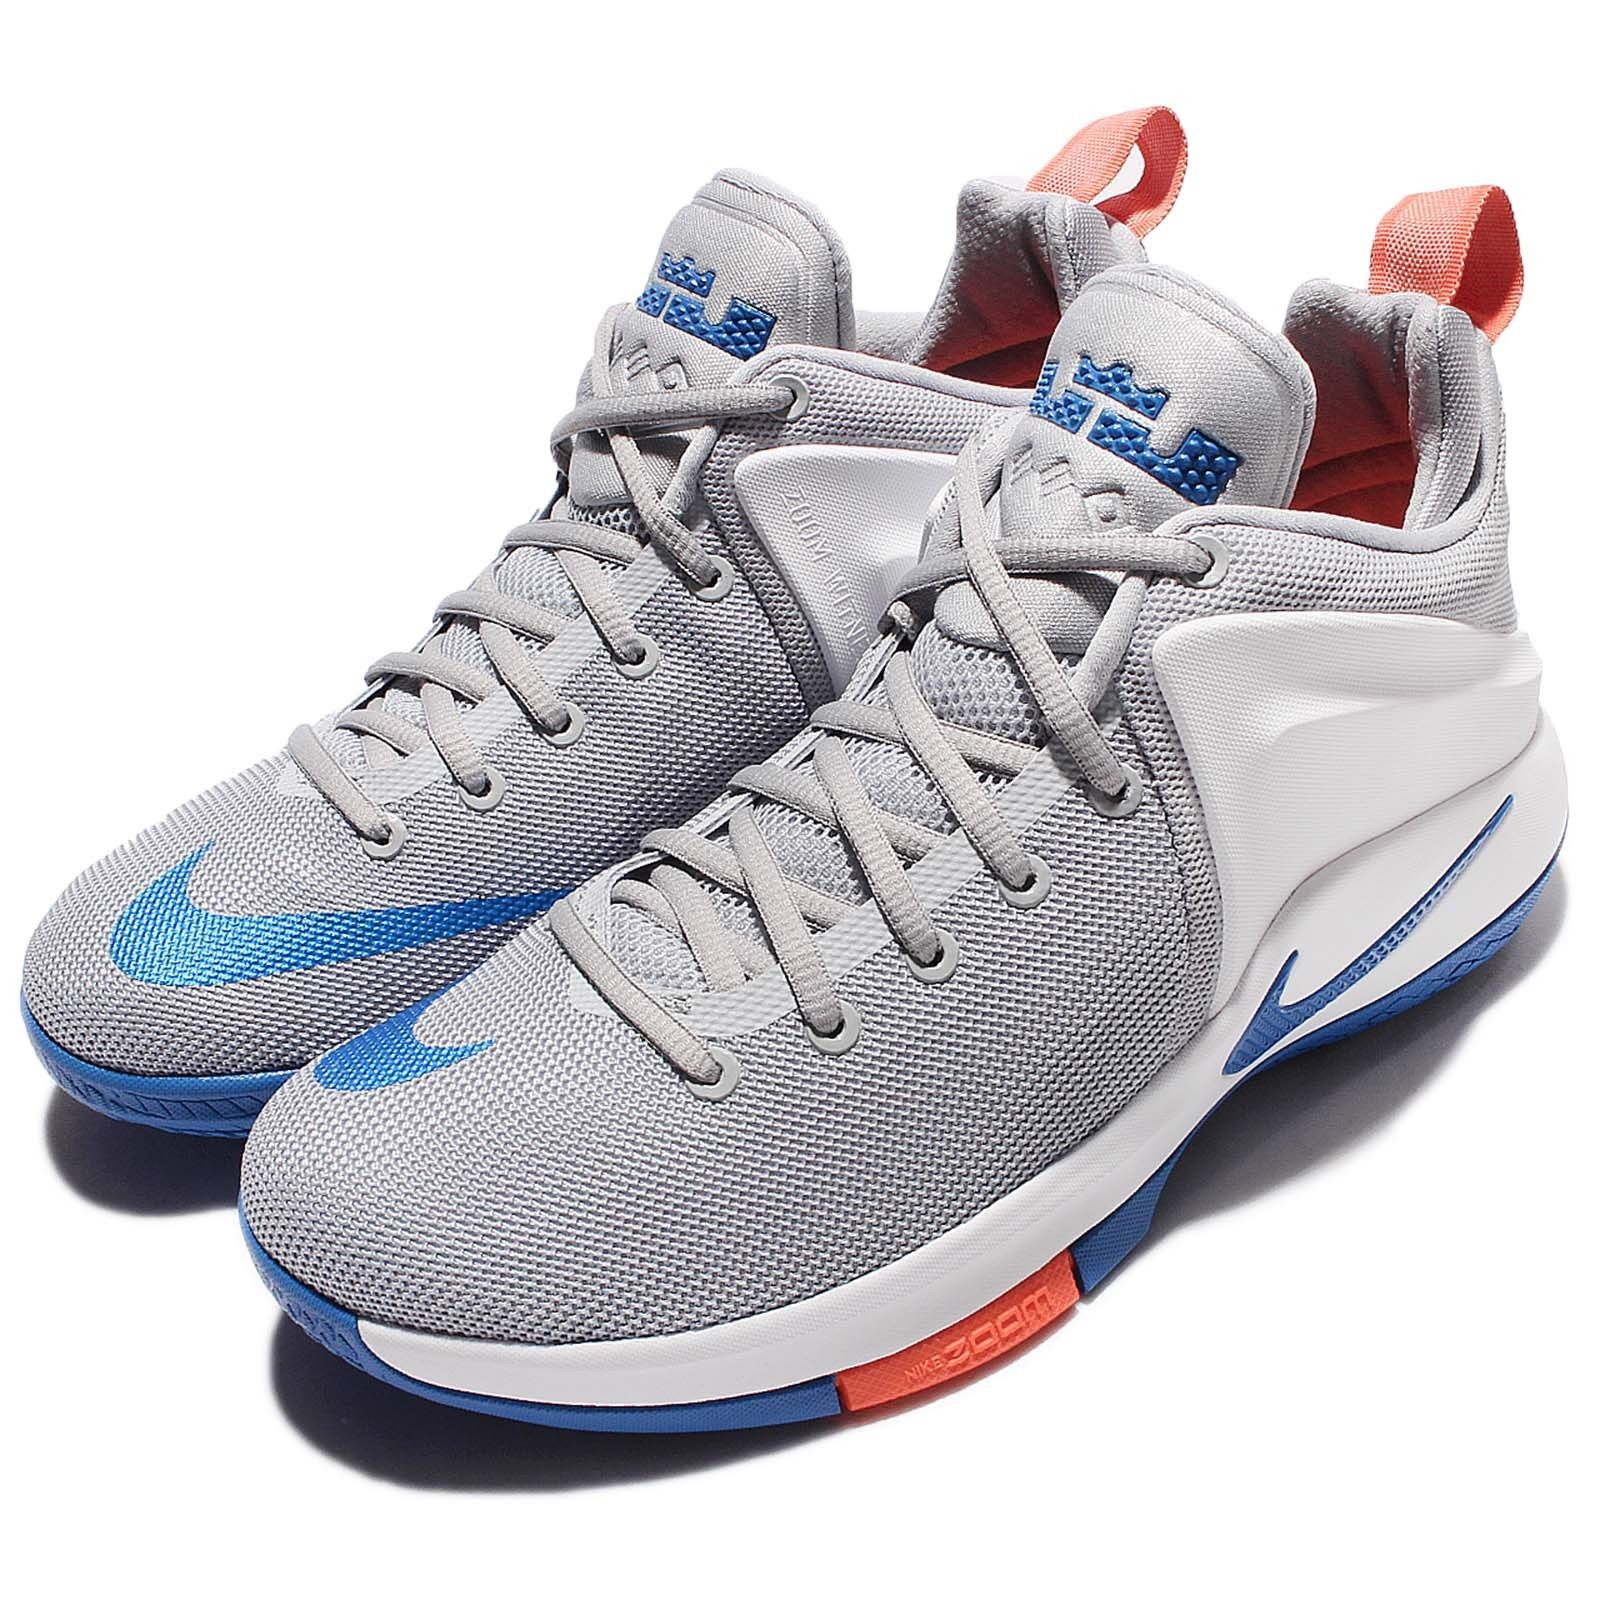 8b04615ba Get Your Hands on the New Nike Zoom Witness   Available Now ...